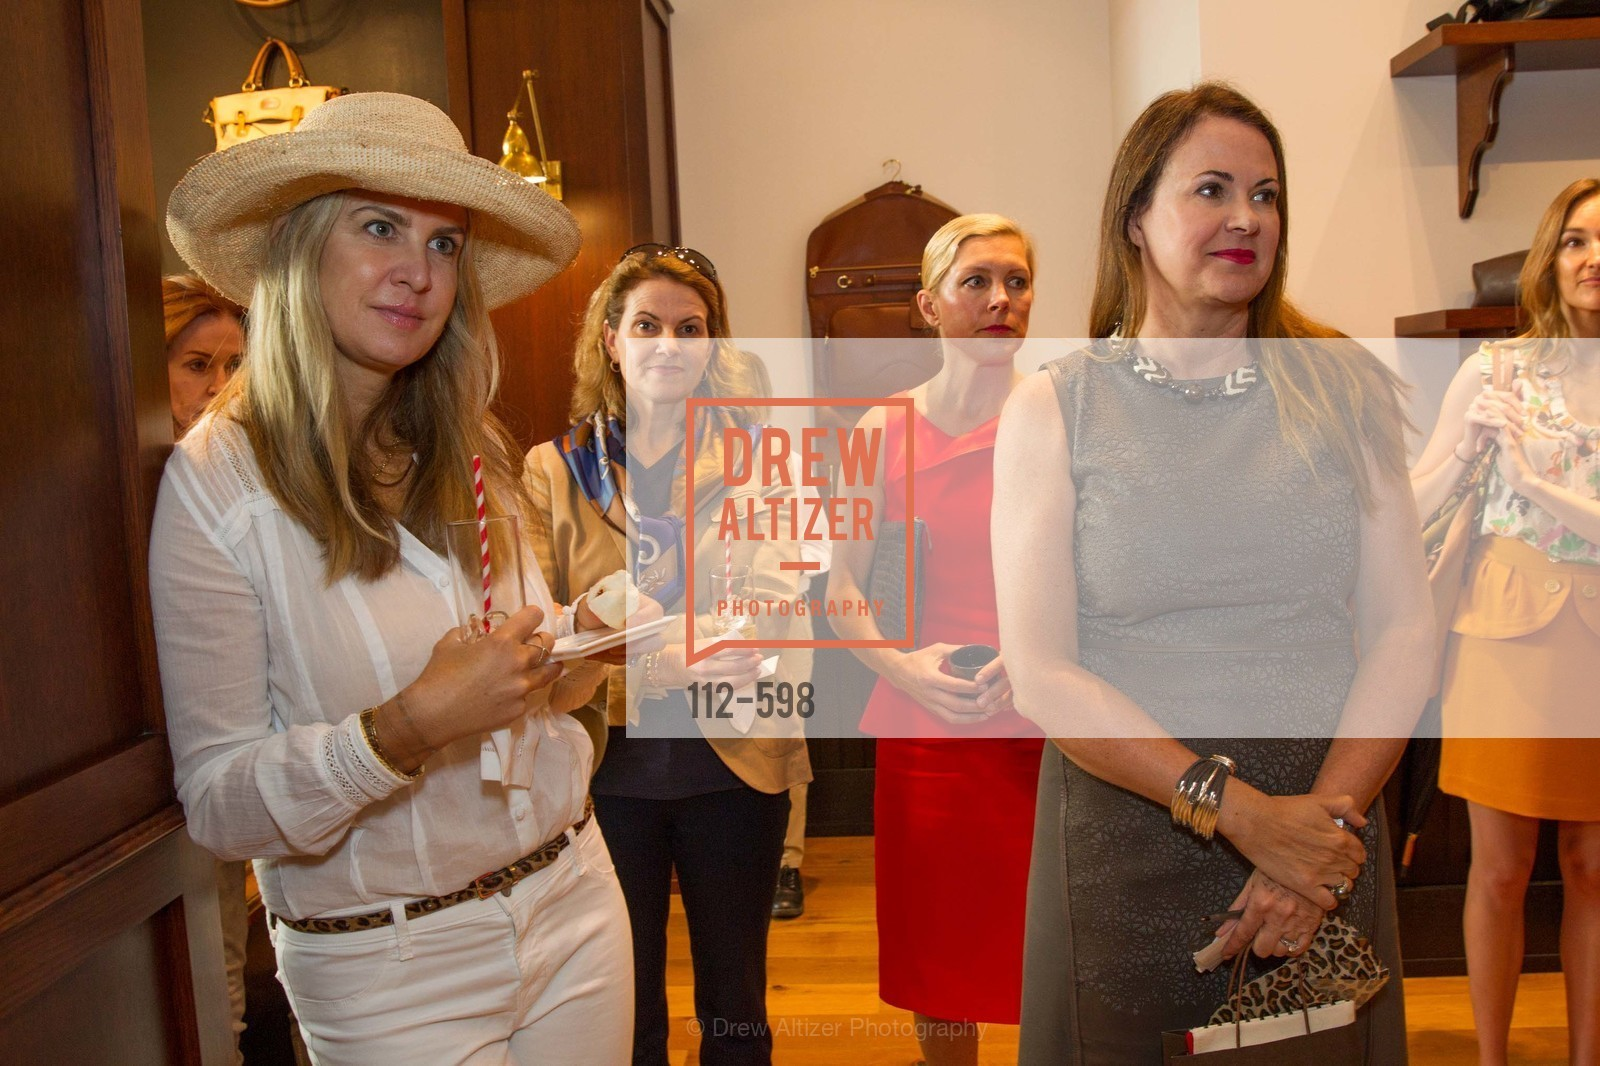 Suzanne Levit, Tanya Peterson, GHURKA FALL FASHION Press Preview Honoring the ZOO BOARD, US, October 8th, 2014,Drew Altizer, Drew Altizer Photography, full-service agency, private events, San Francisco photographer, photographer california